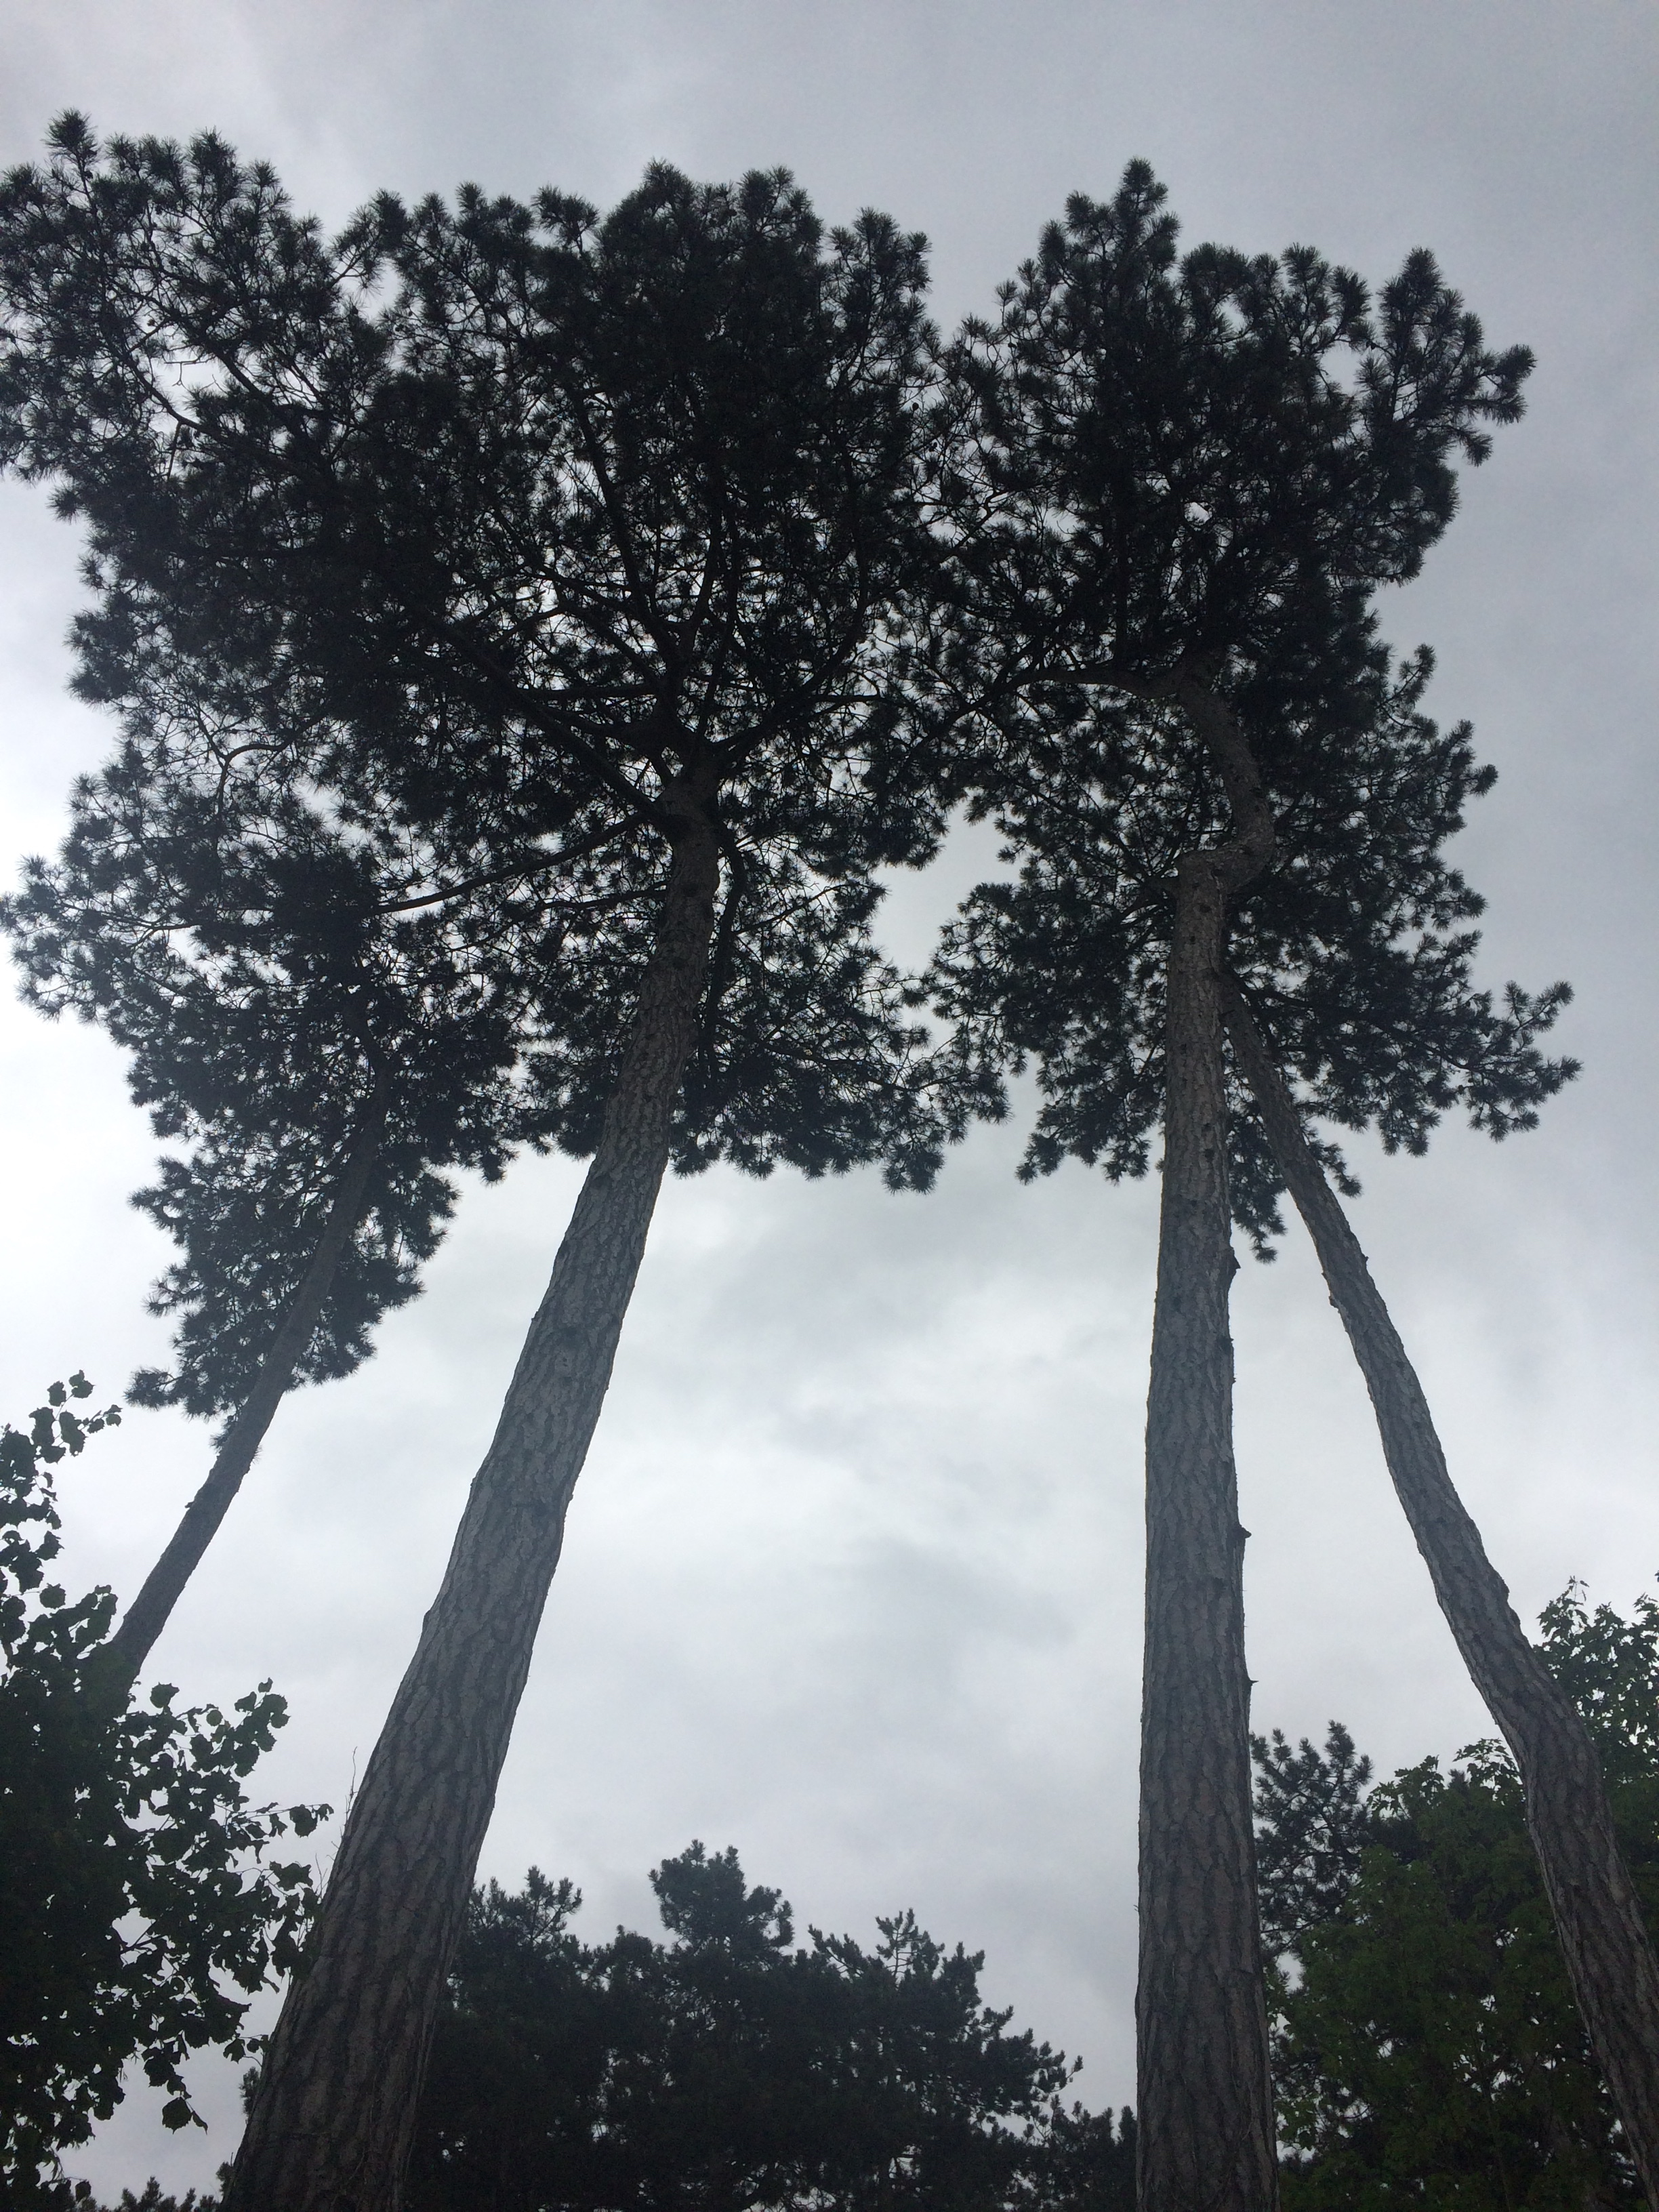 view of trees from beneath